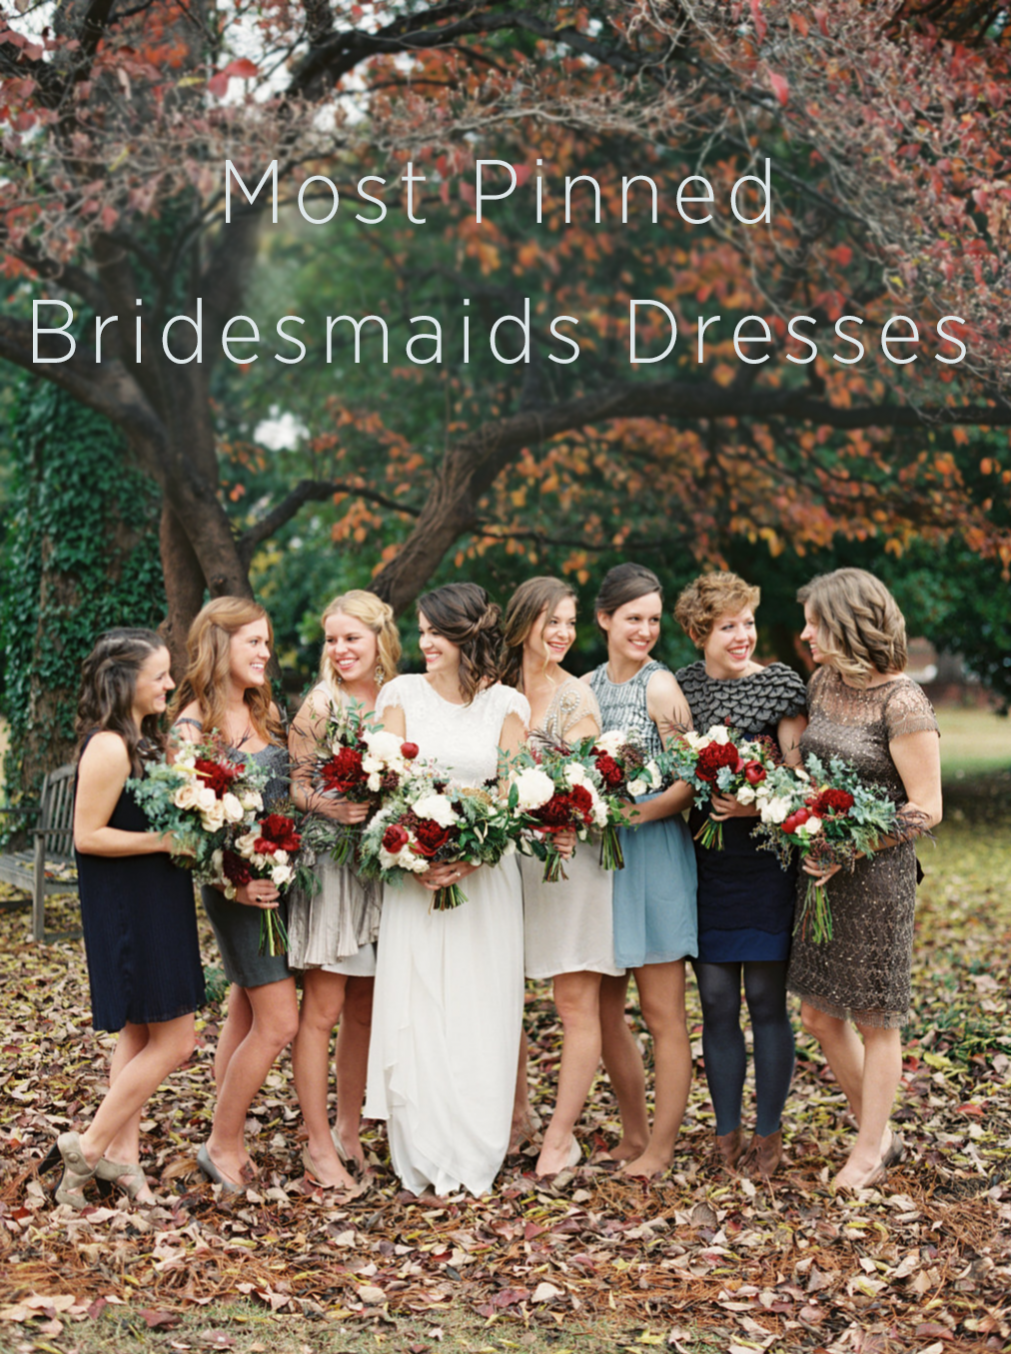 most-pinned-bridesmaids-dresses